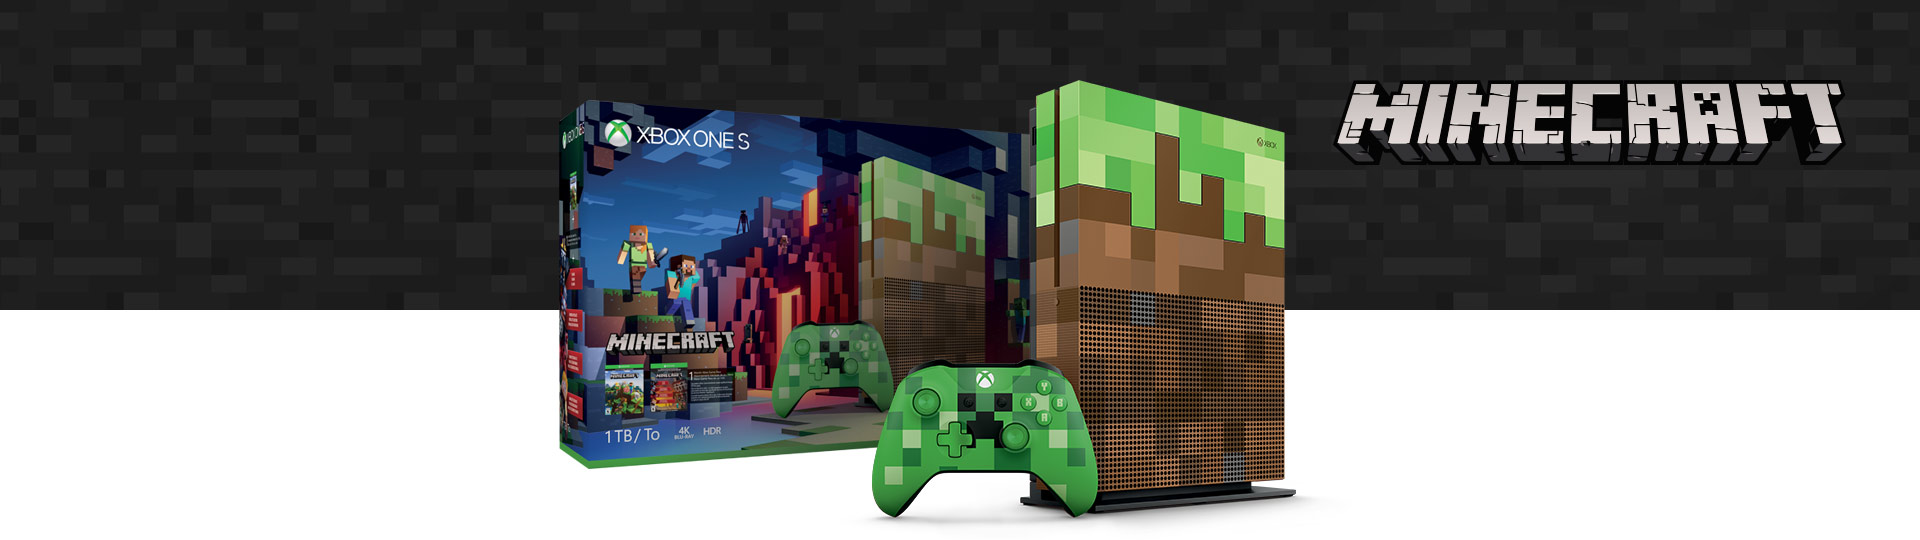 Ensemble Xbox One S Minecraft Limited Edition (1 To)